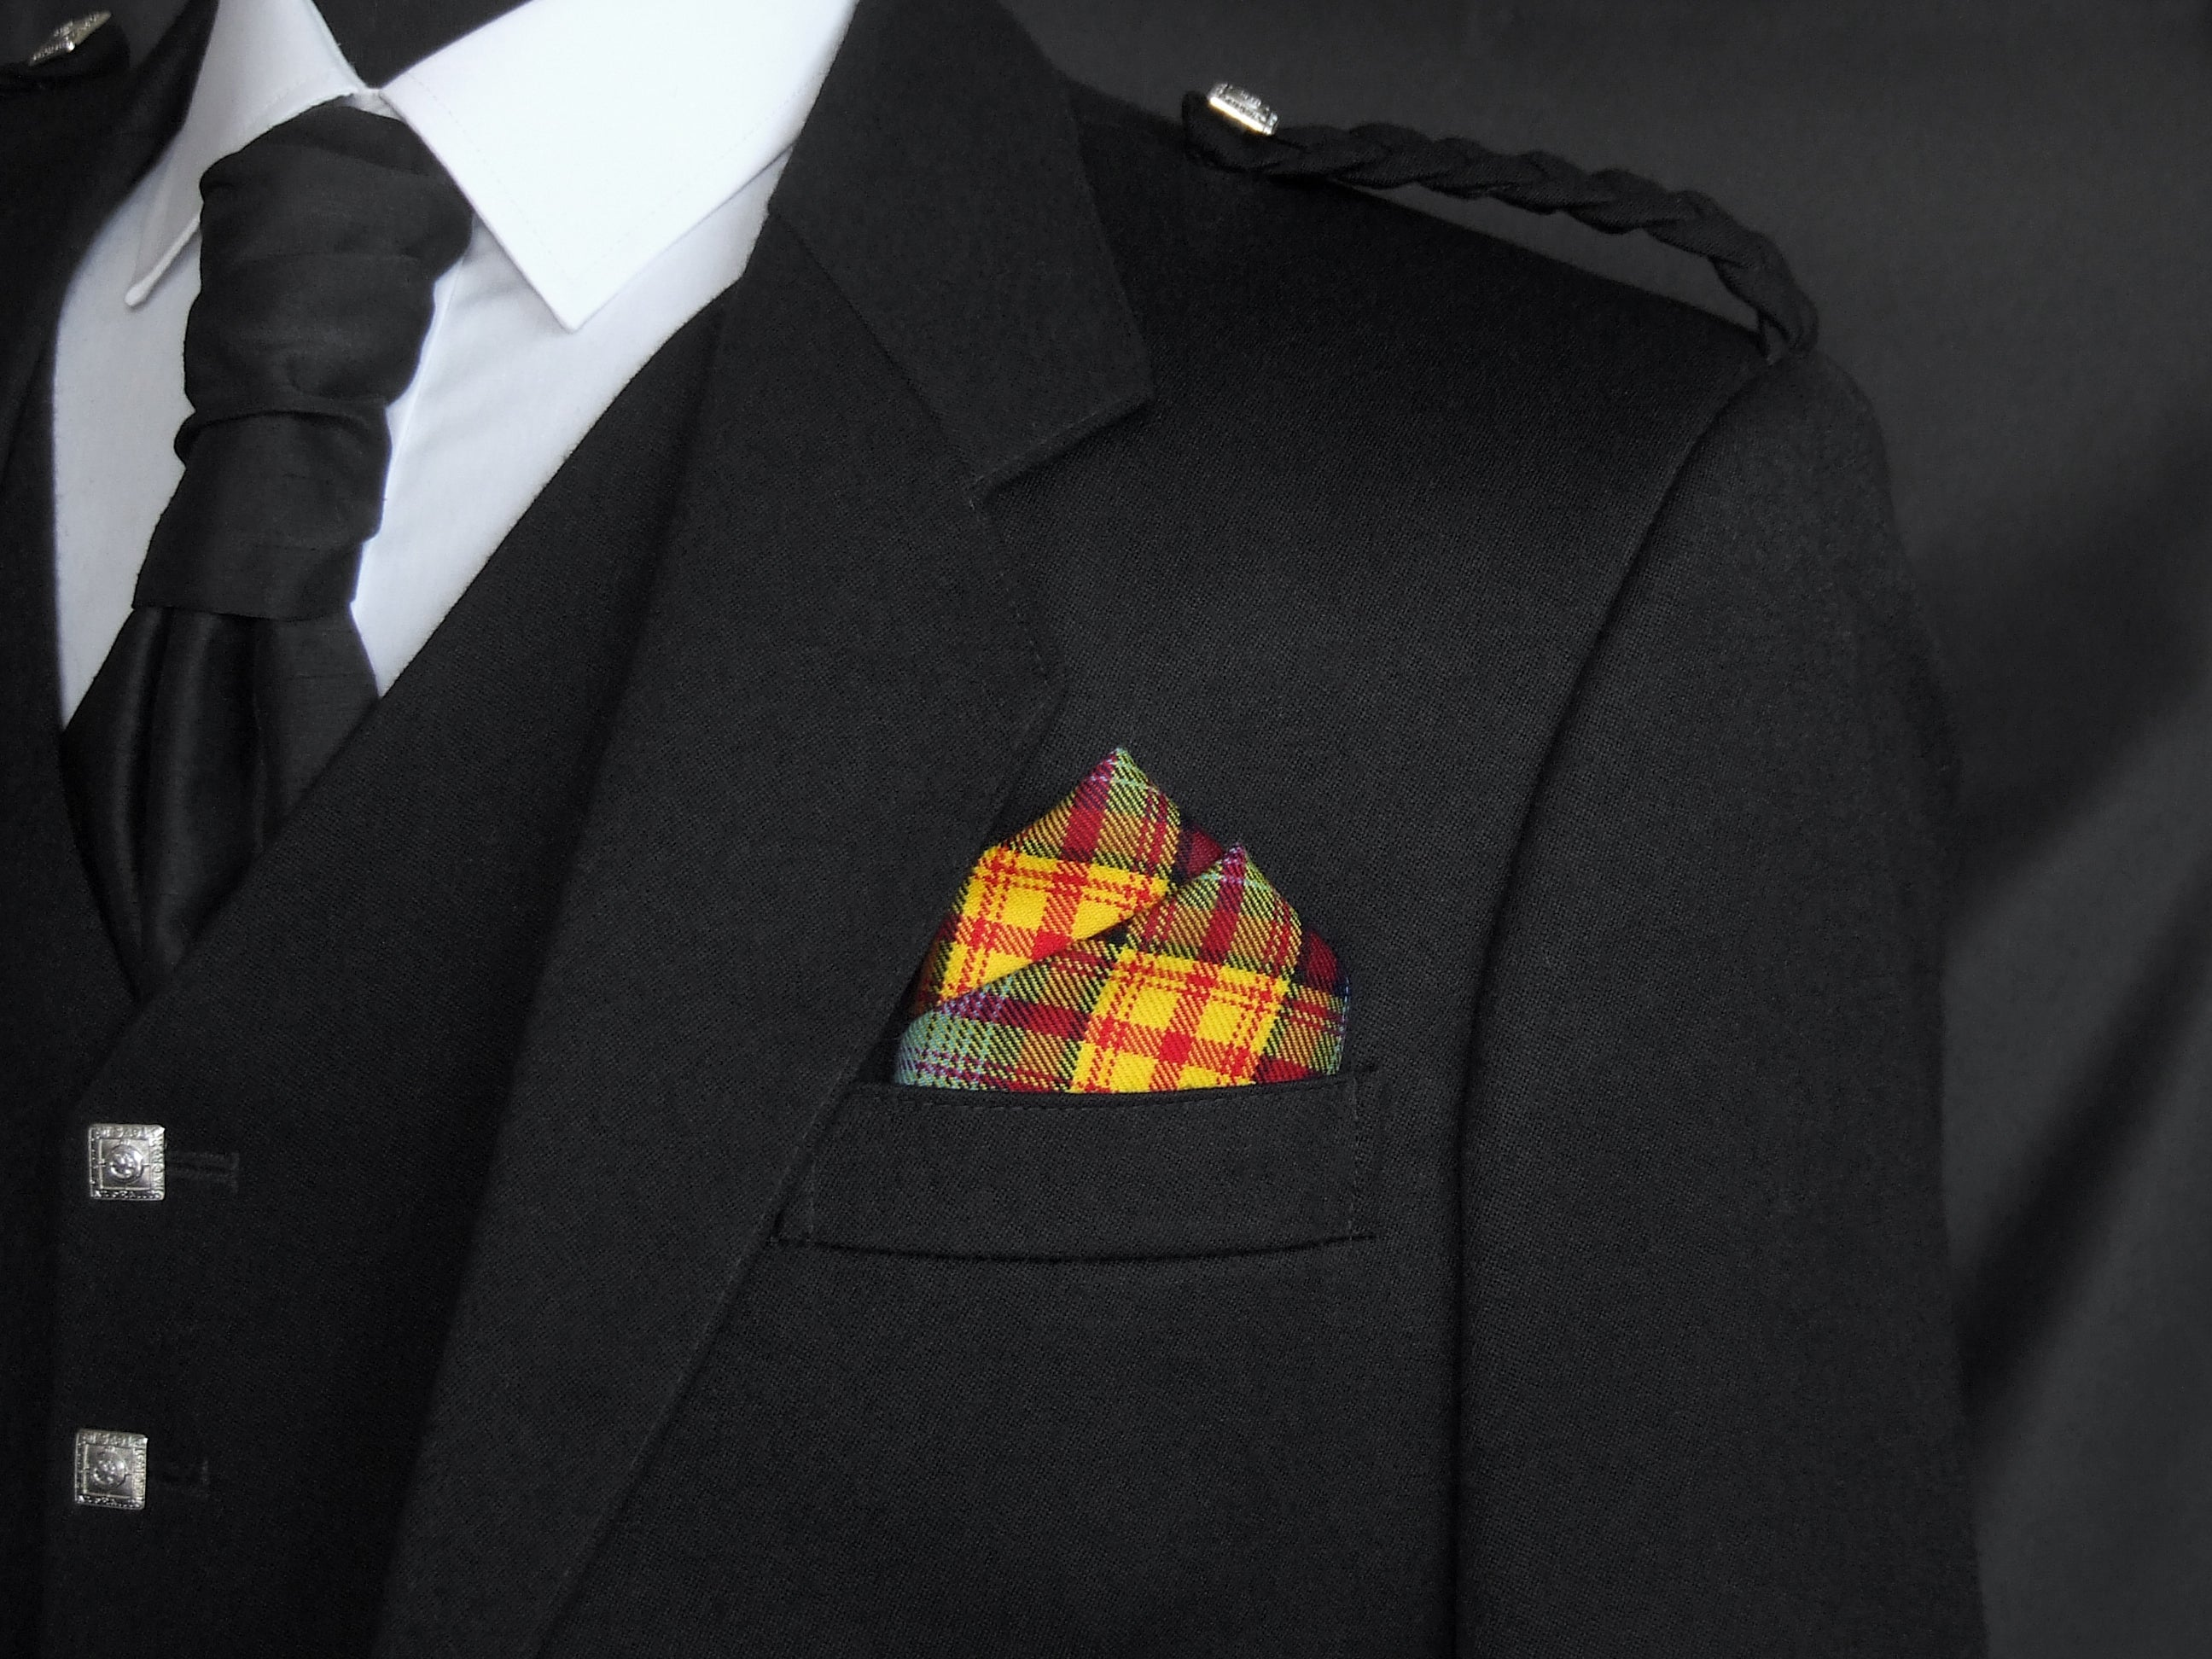 The Declaration tartan pocket square with Lion Rampant design